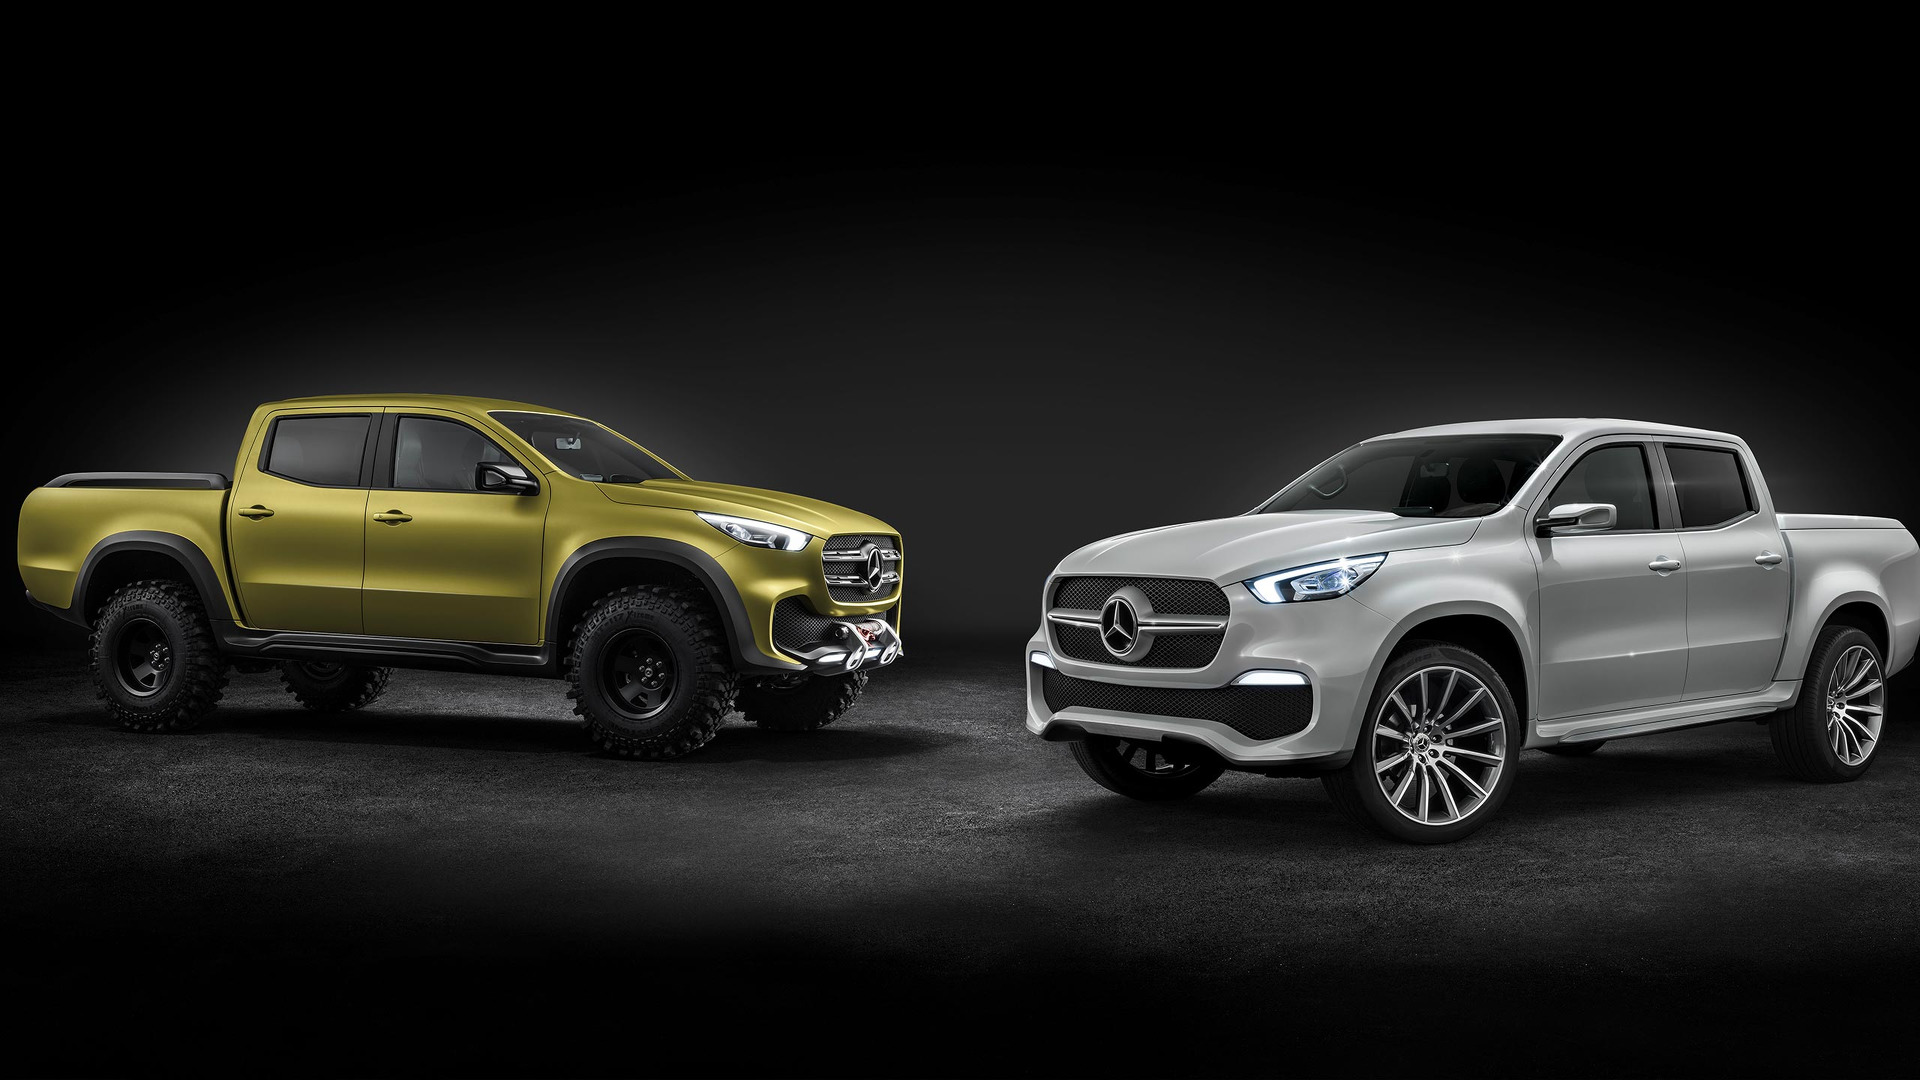 Mb X? S? Mercedes Benz Pickup Concept Revealed Will Become X Class